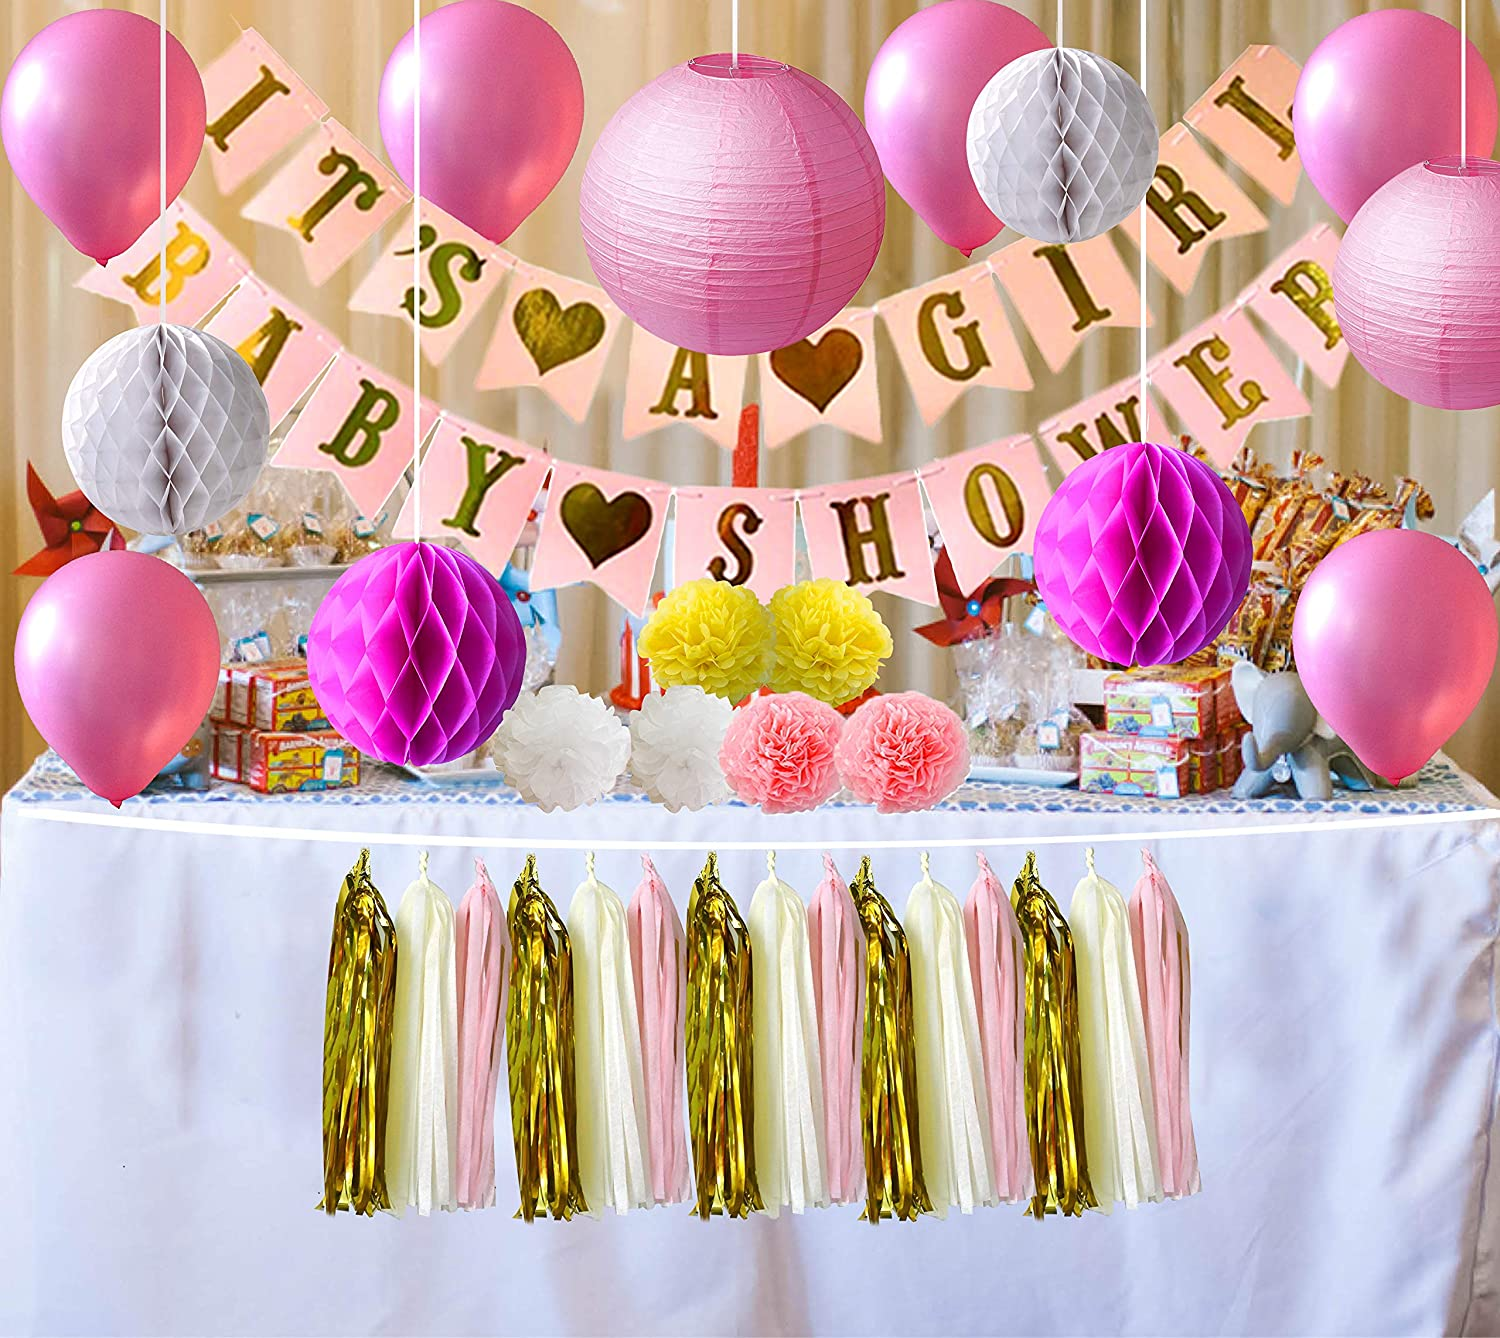 ATSON Baby Shower Decorations for Girl 41pc It s A Girl Baby Shower Banner Tassels Pompom Flowers Balloons Paper Lanterns Honeycomb Balls Pink,White,Yellow Easy Assemble